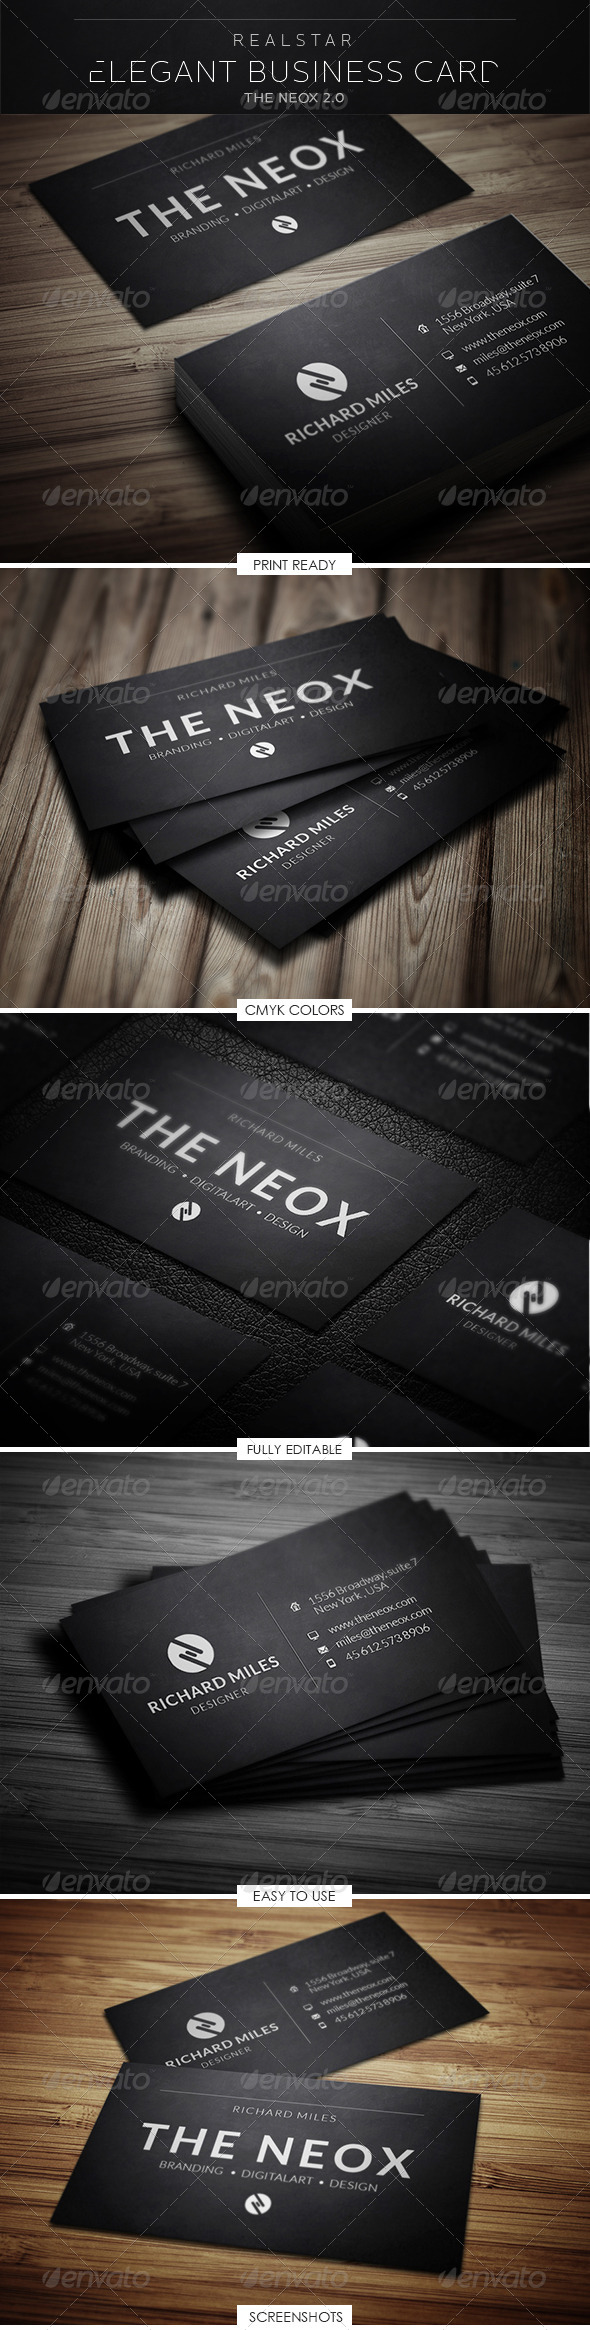 GraphicRiver The Neox 2 Corporate Business Card 5297849